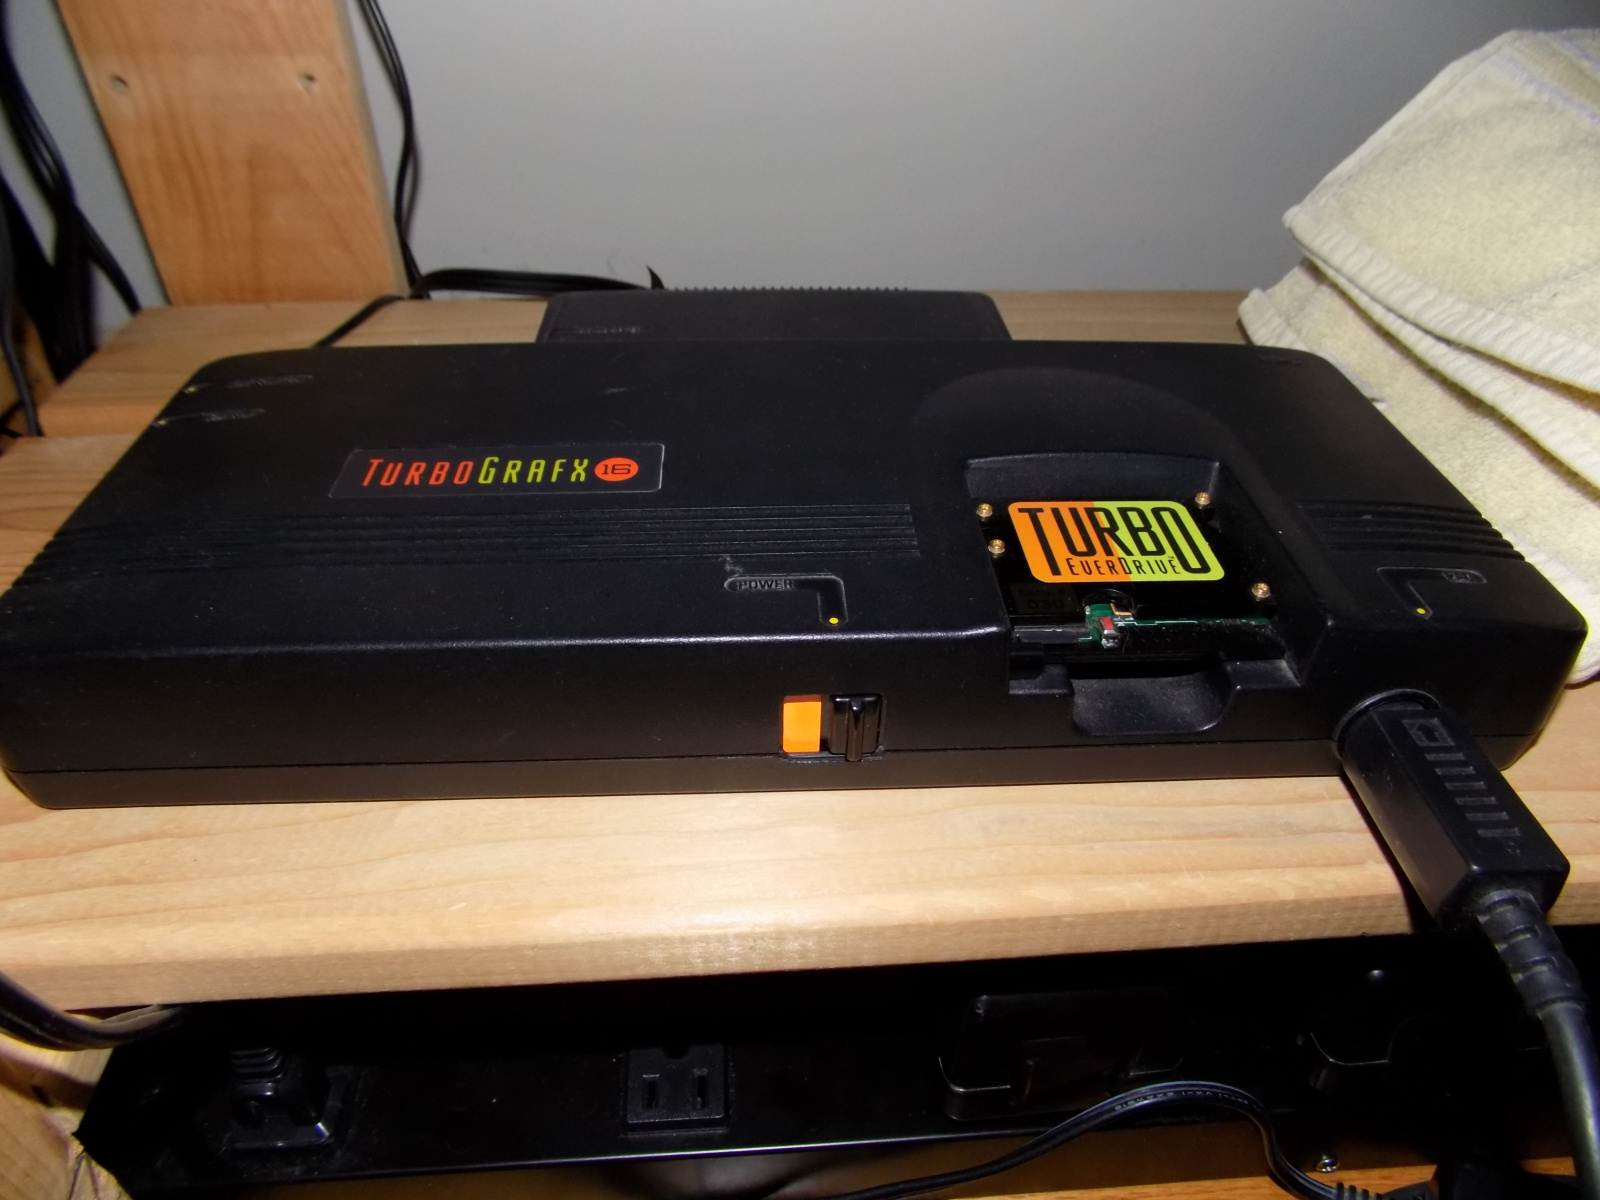 darrin9999: Volfied (TurboGrafx-16/PC Engine) 229,630 points on 2020-04-25 17:51:53